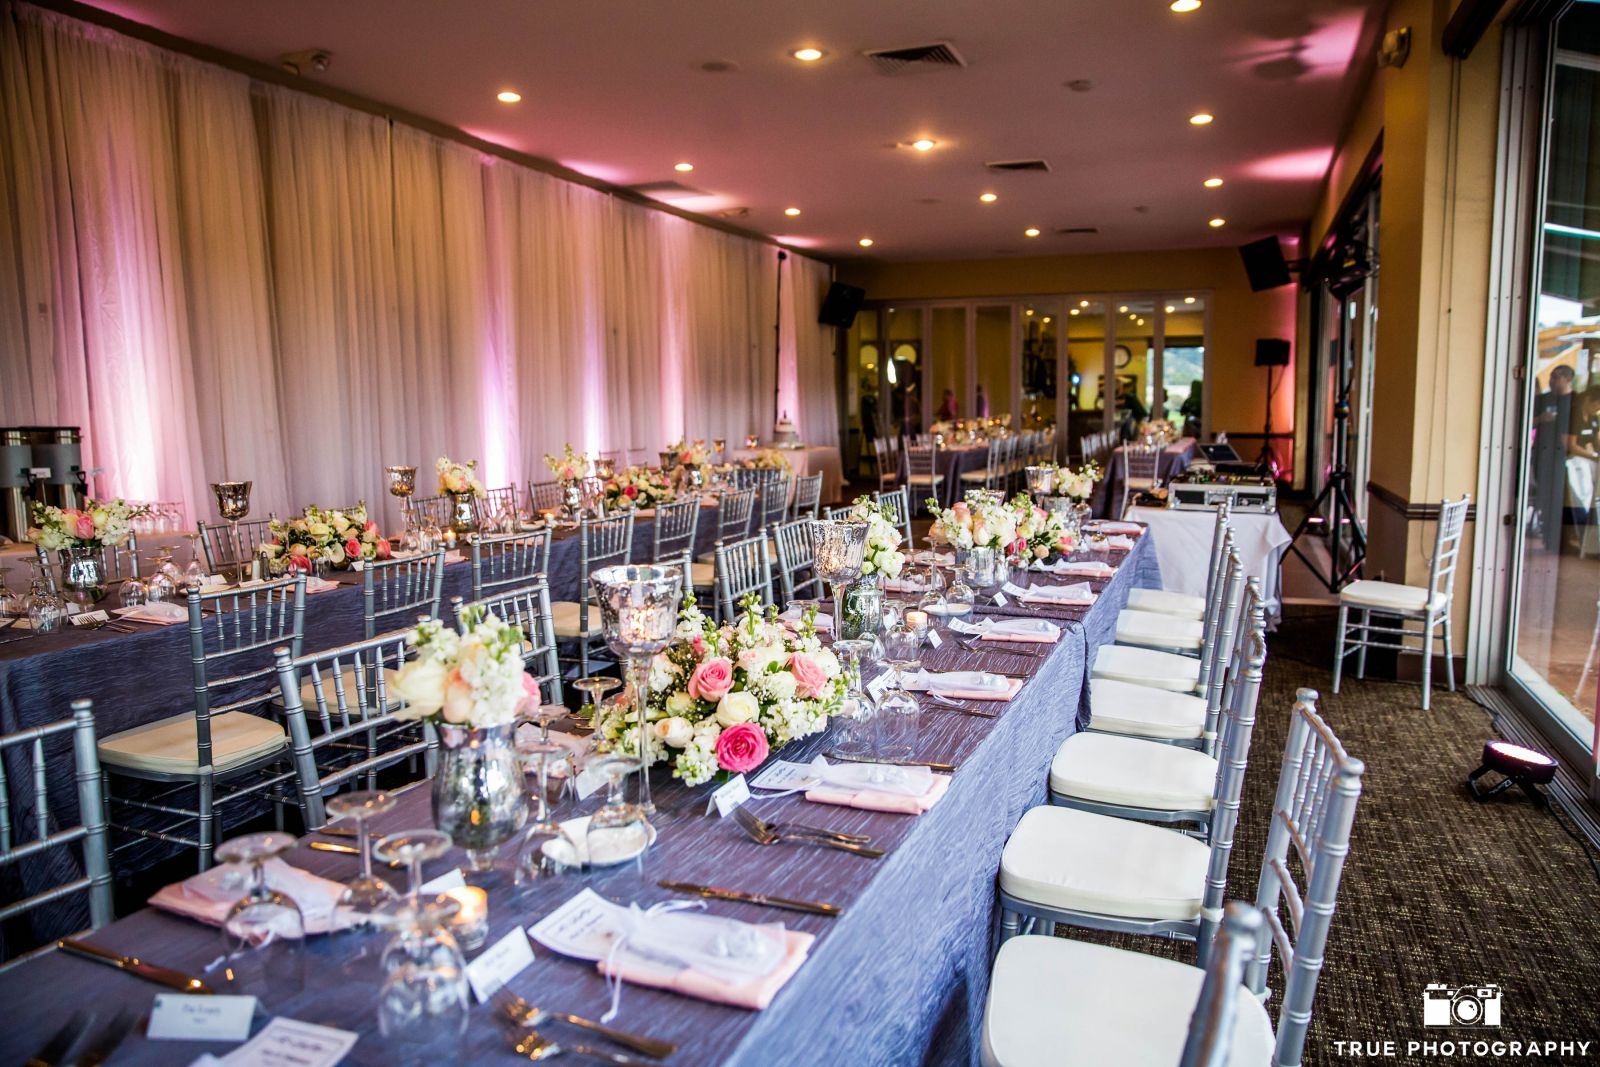 Our 7,000 square foot clubhouse has indoor and outdoor event space